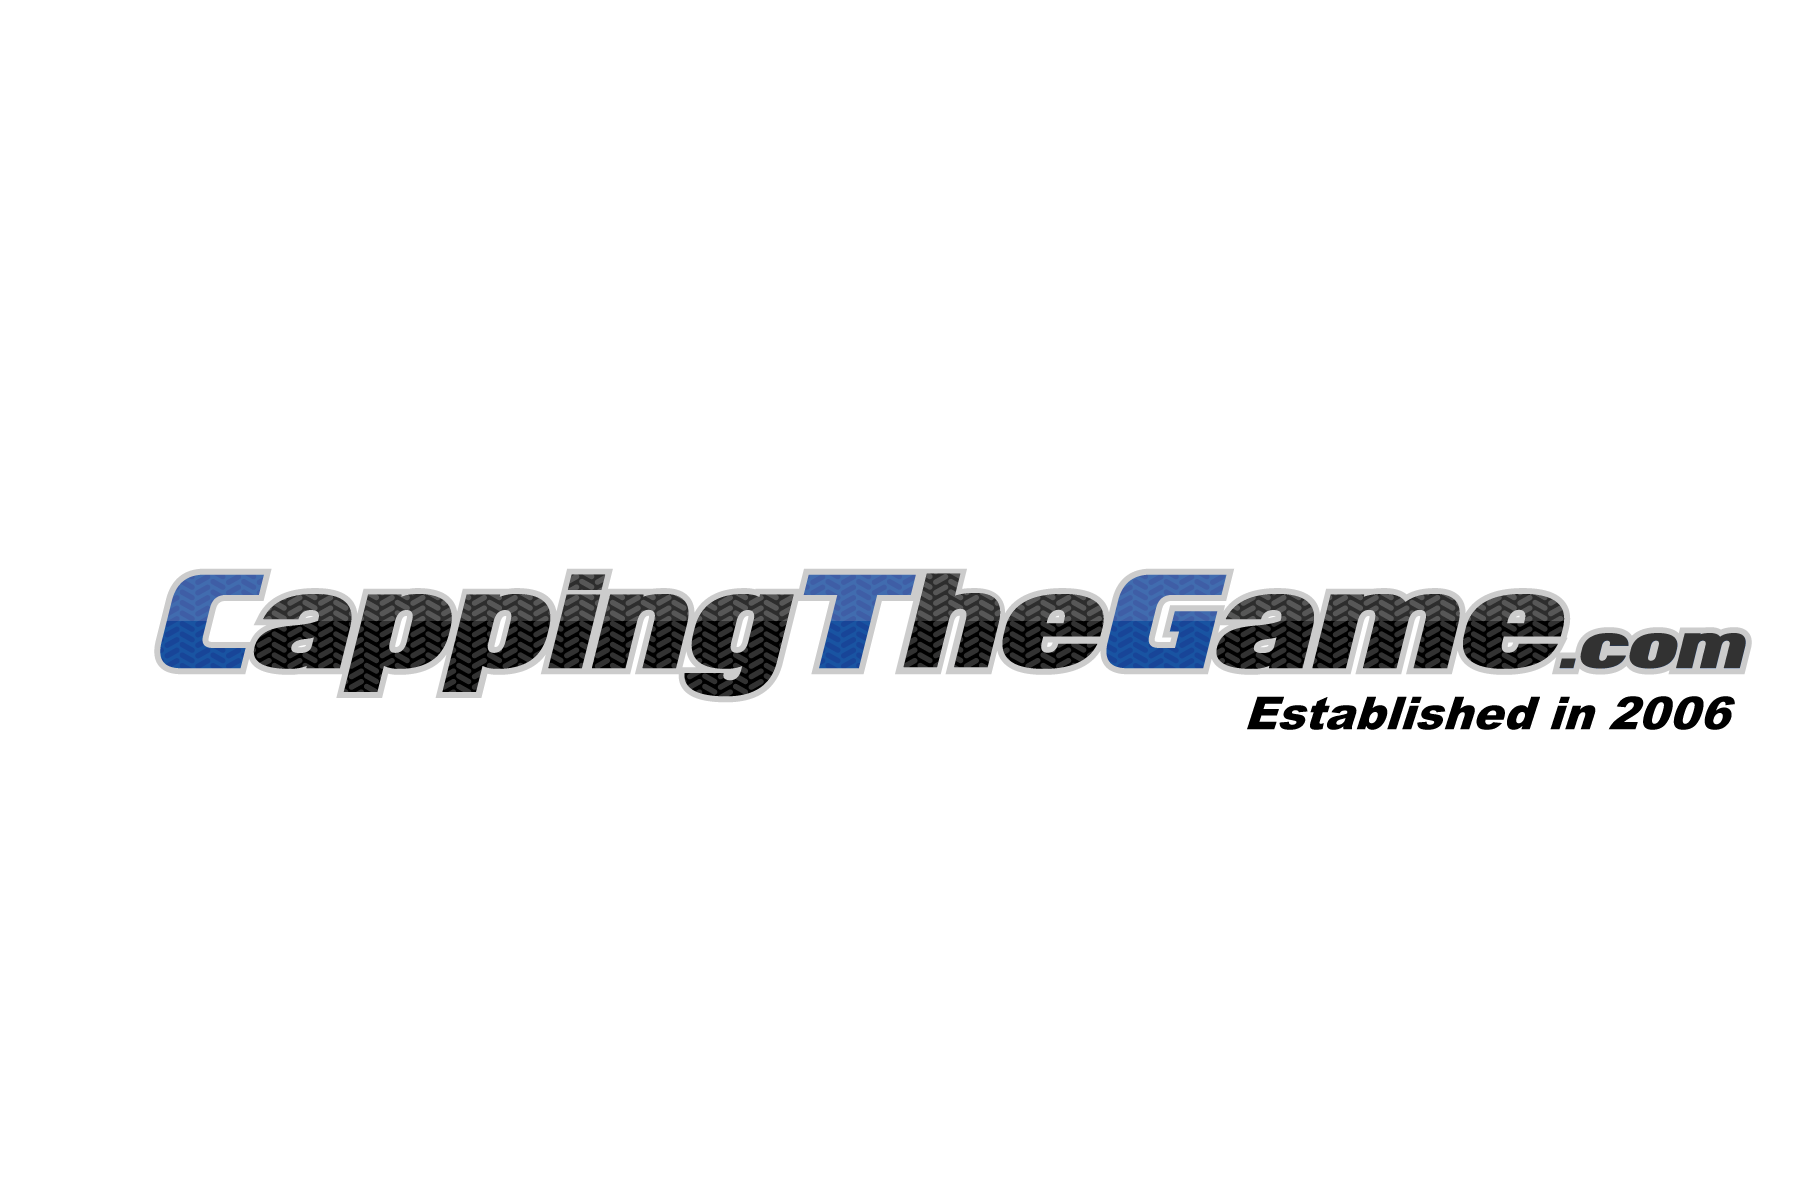 Welcome to CappingTheGame.com!